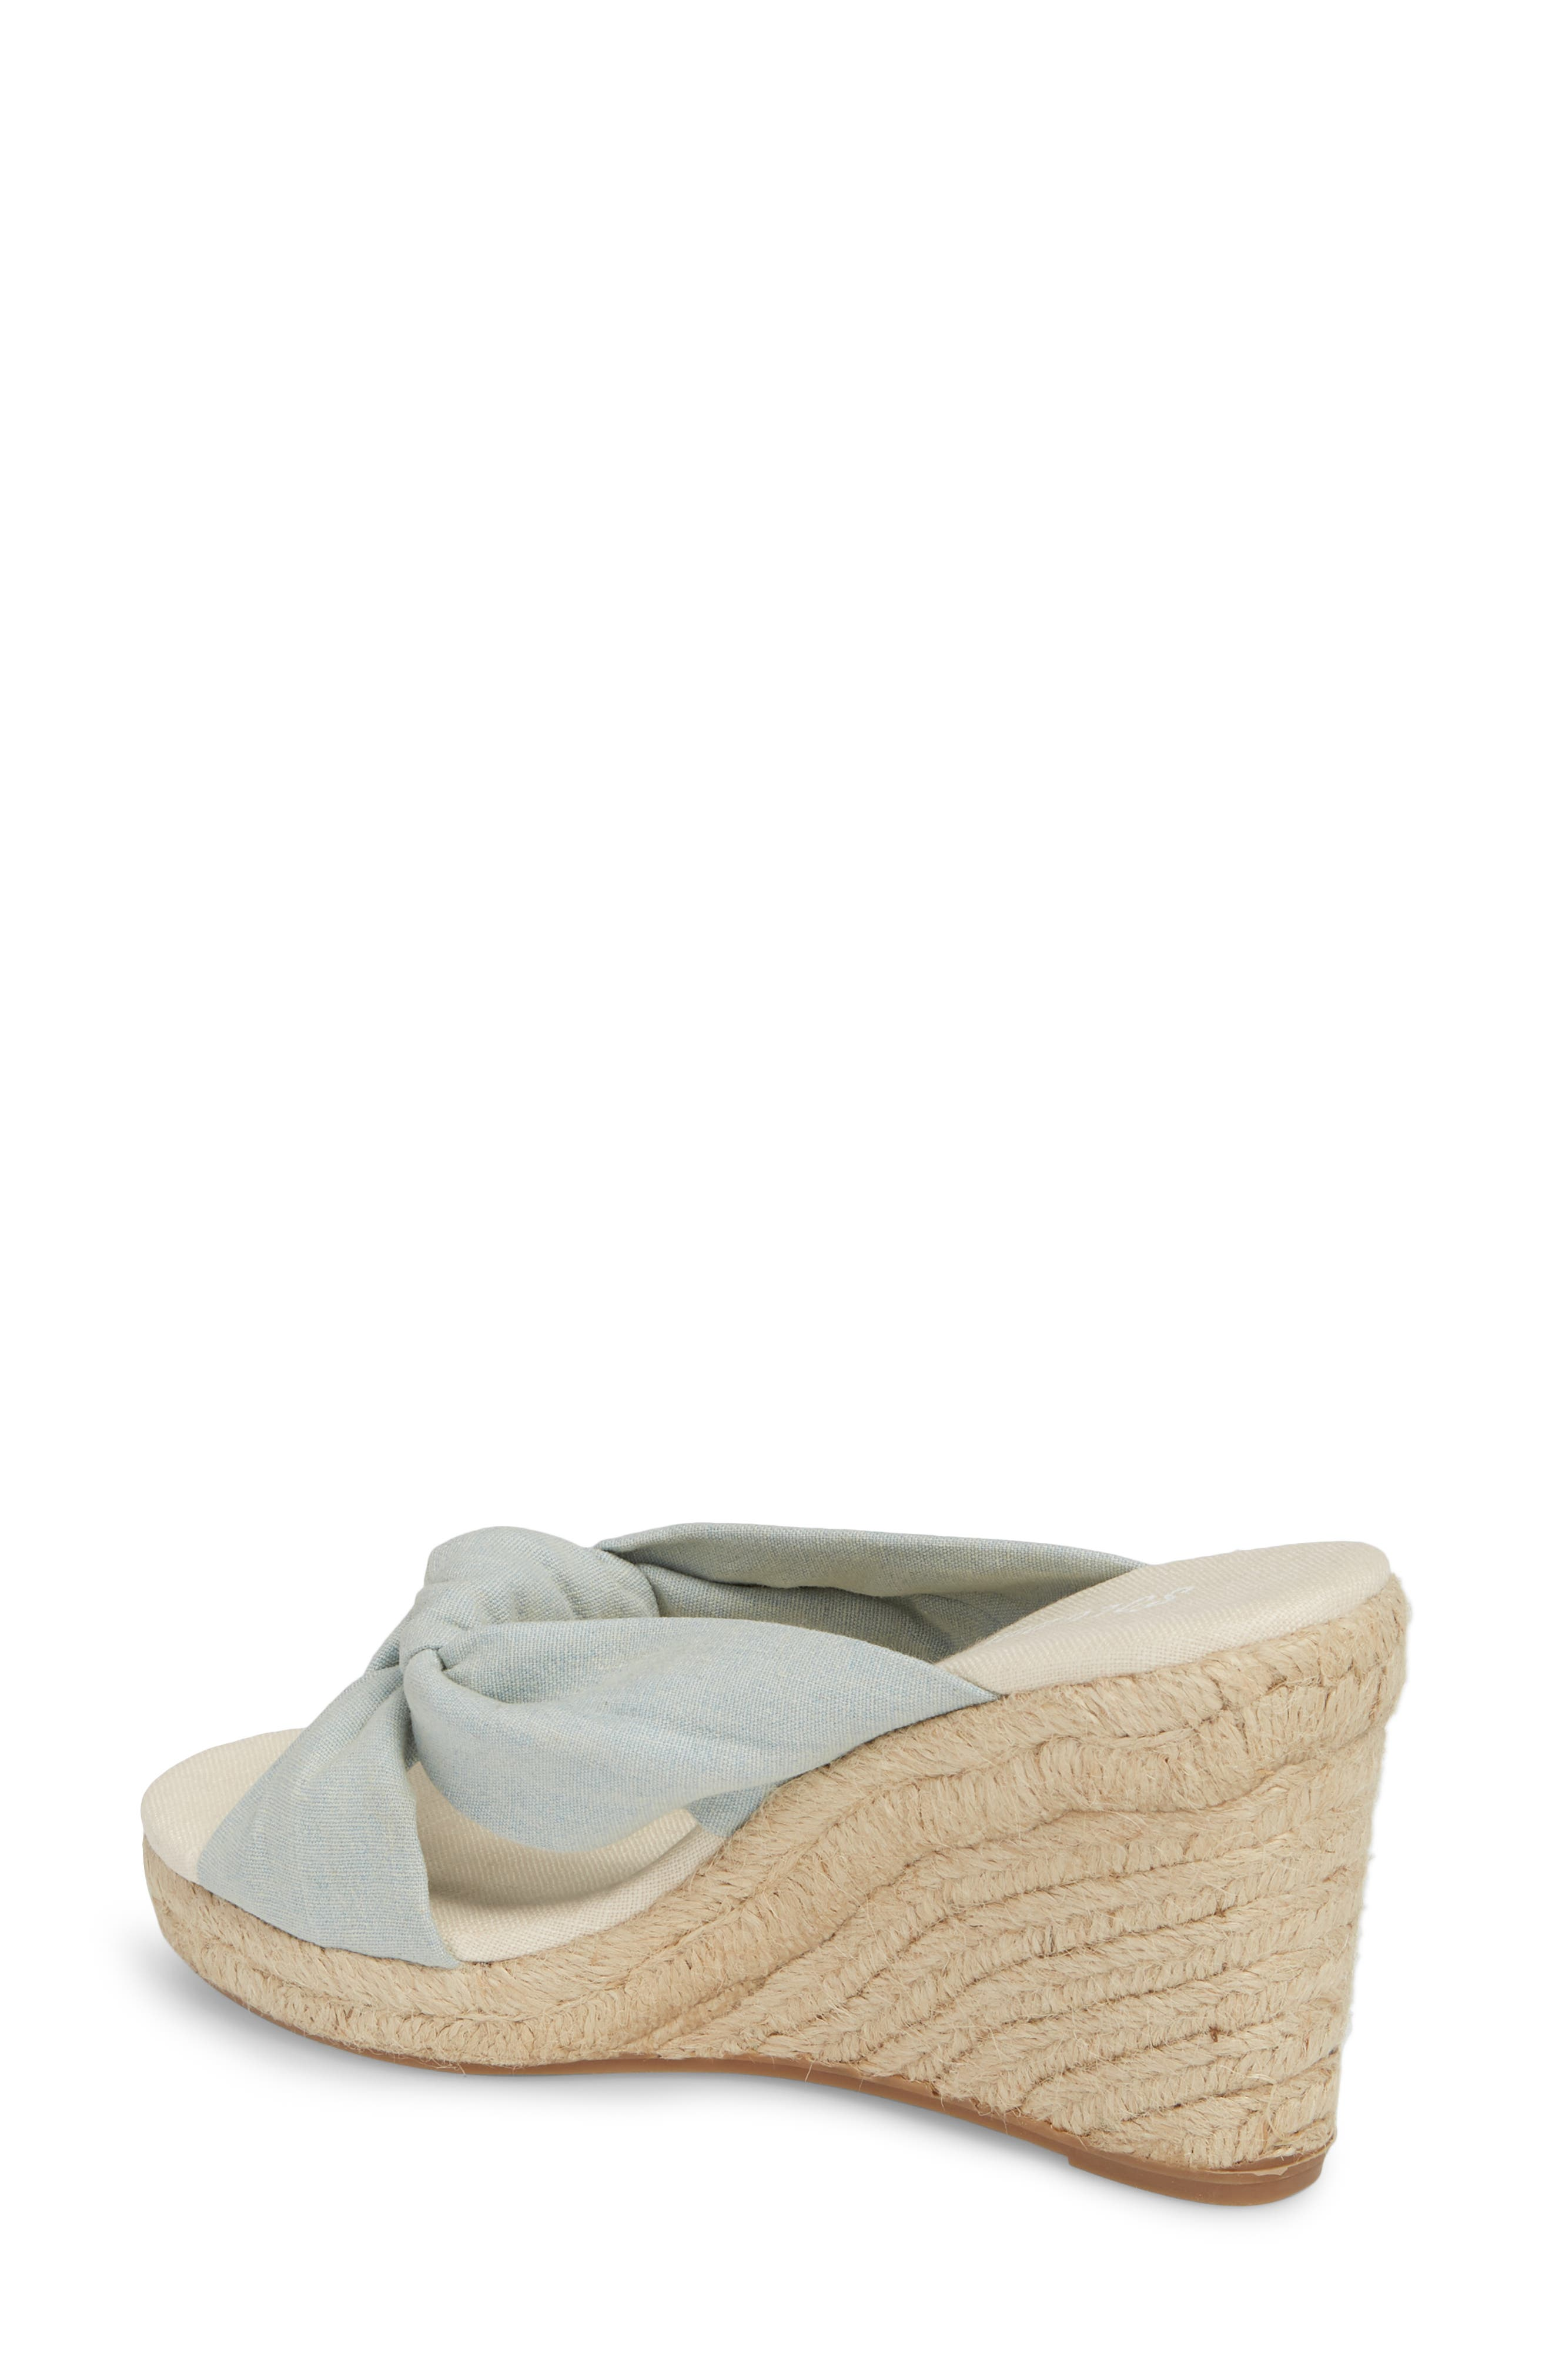 Knotted Espadrille Wedge Sandal,                             Alternate thumbnail 2, color,                             Chambray